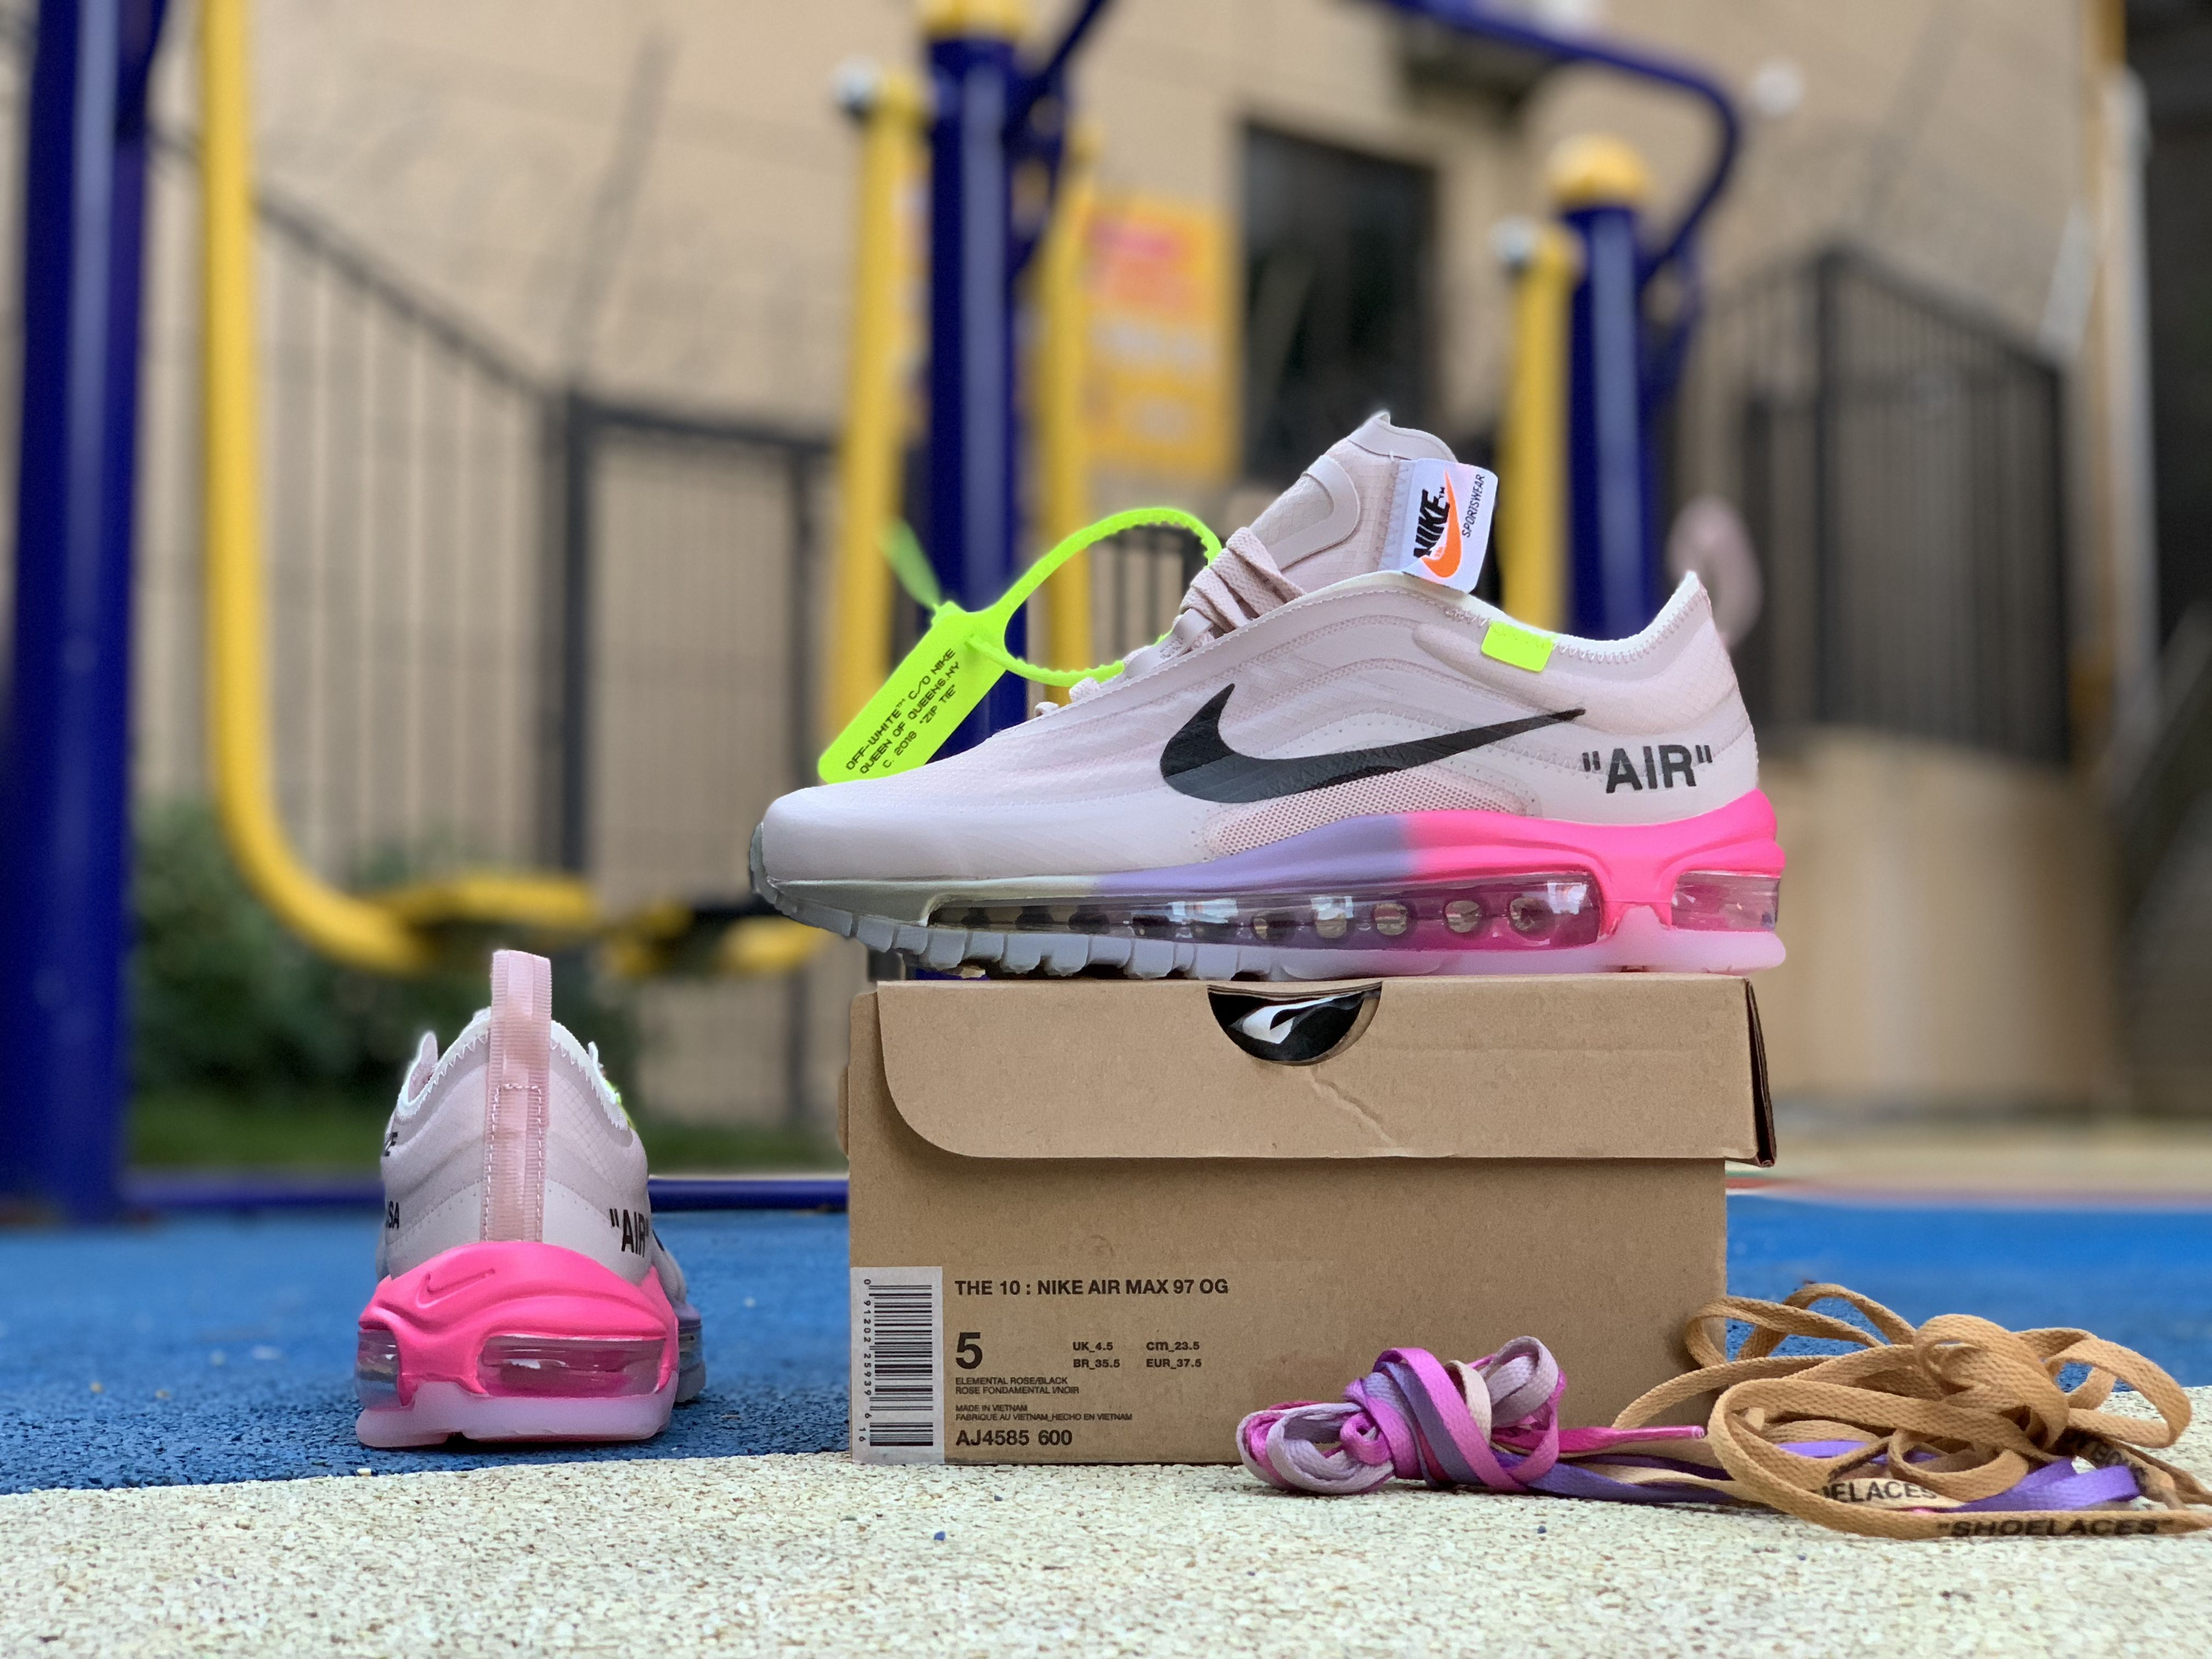 Buy Off White X Air Max 97 Serena Williams Queen Elemental Rose Aj4585 600 Nike Air Max 97 Air Max 97 Nike Air Max